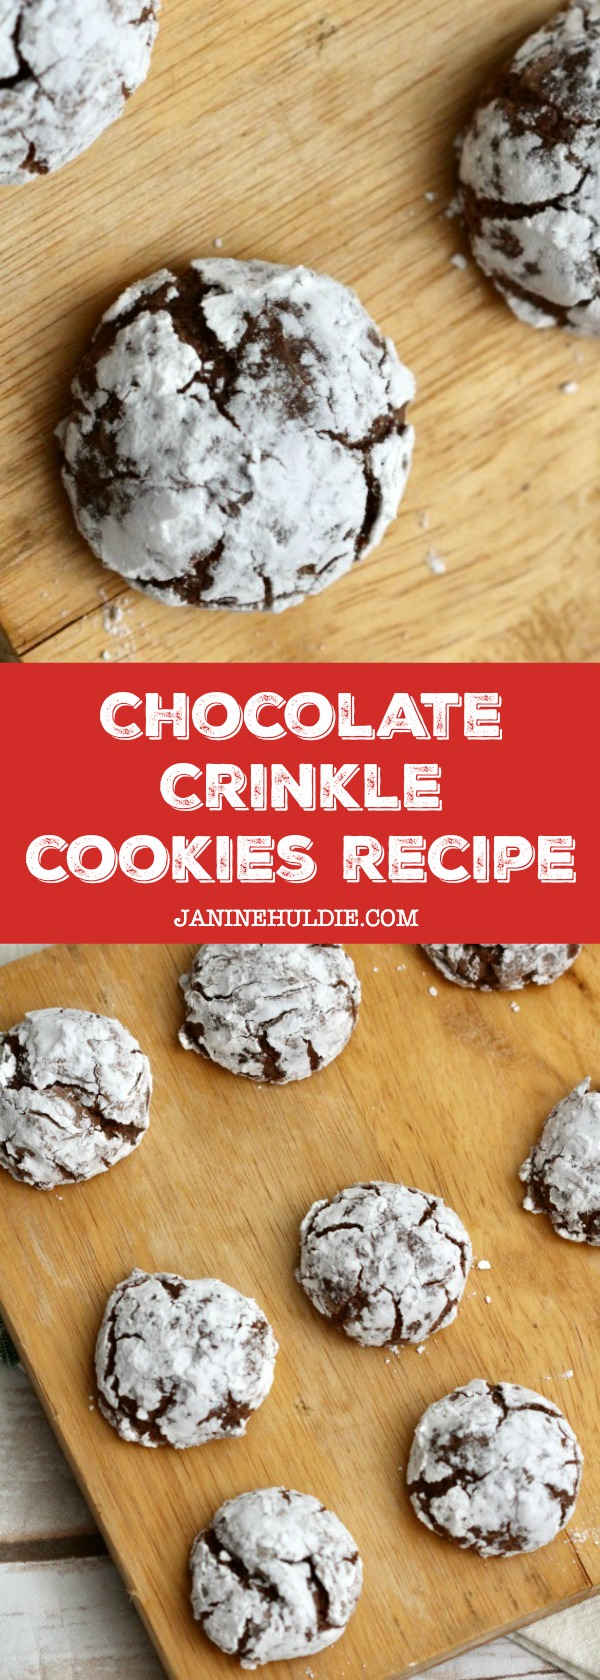 Chocolate Crinkle Cookies Recipe_1